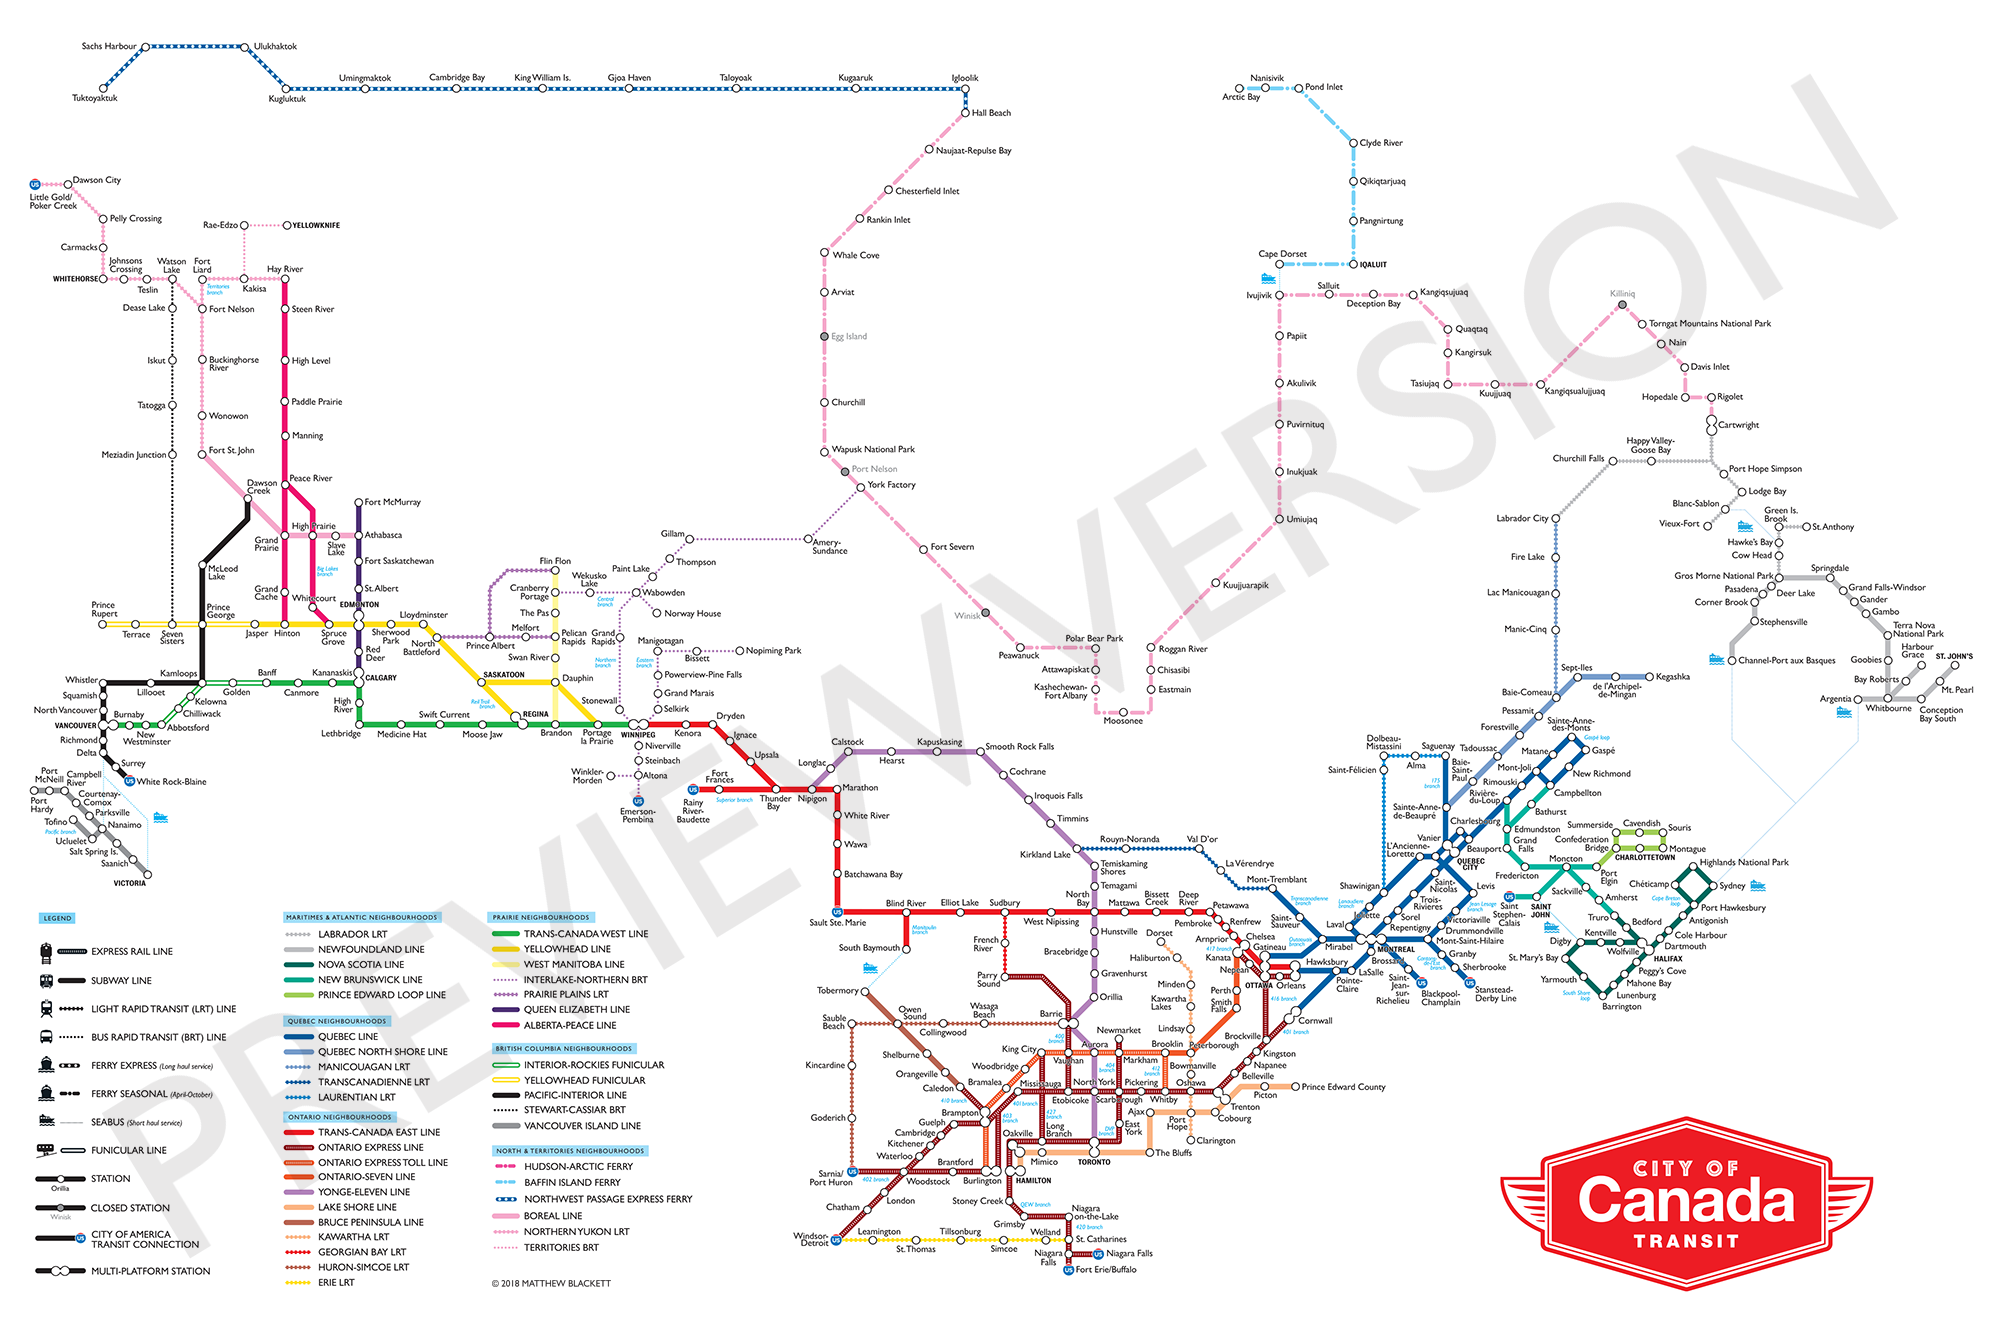 City Map Of Canada.City Of Canada Map Print Spacing Store Toronto S City Gift Store